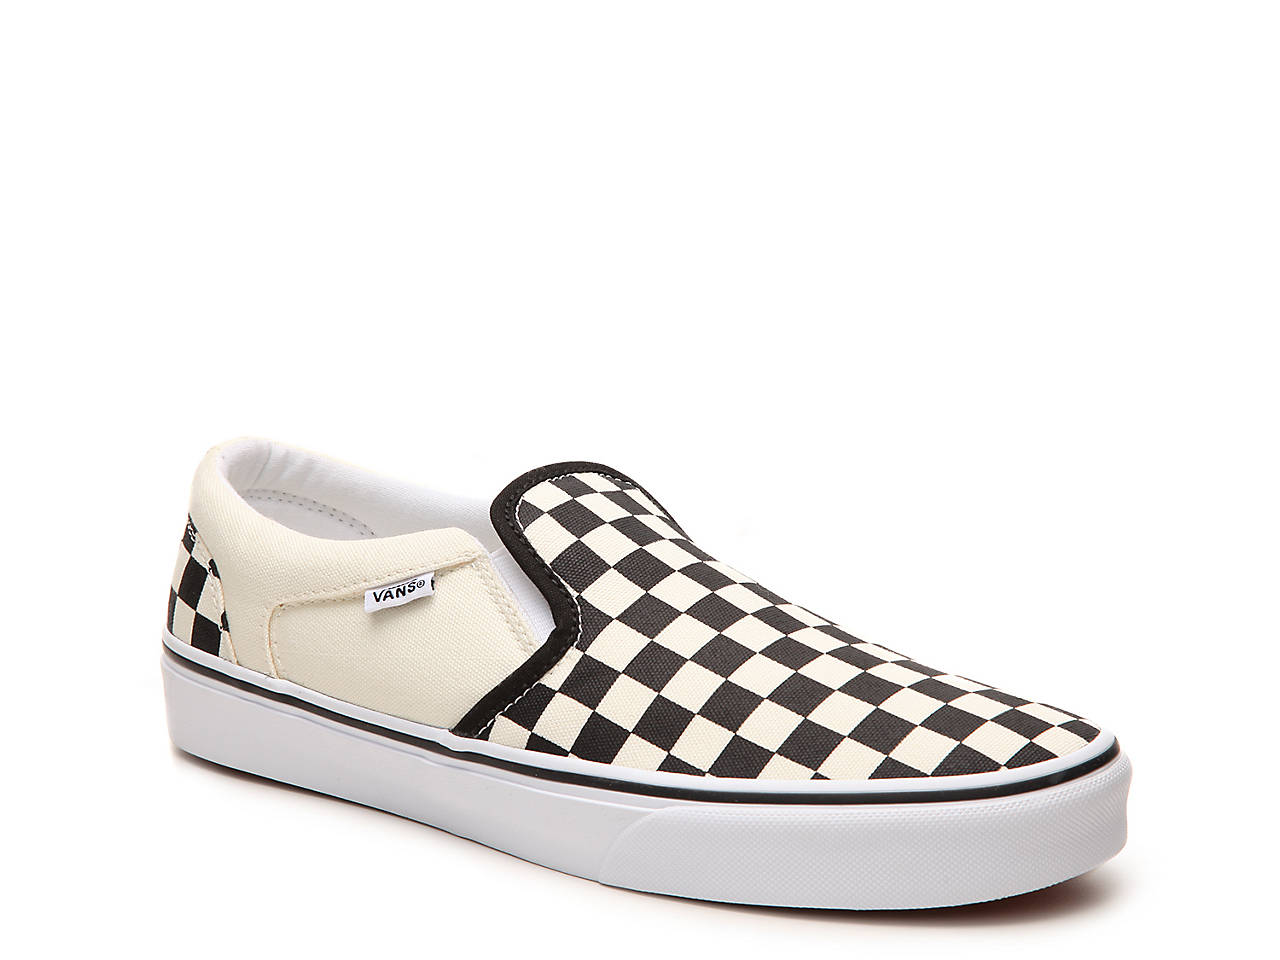 4cc83c84dce Vans Asher Checkered Slip-On Sneaker - Men s Men s Shoes